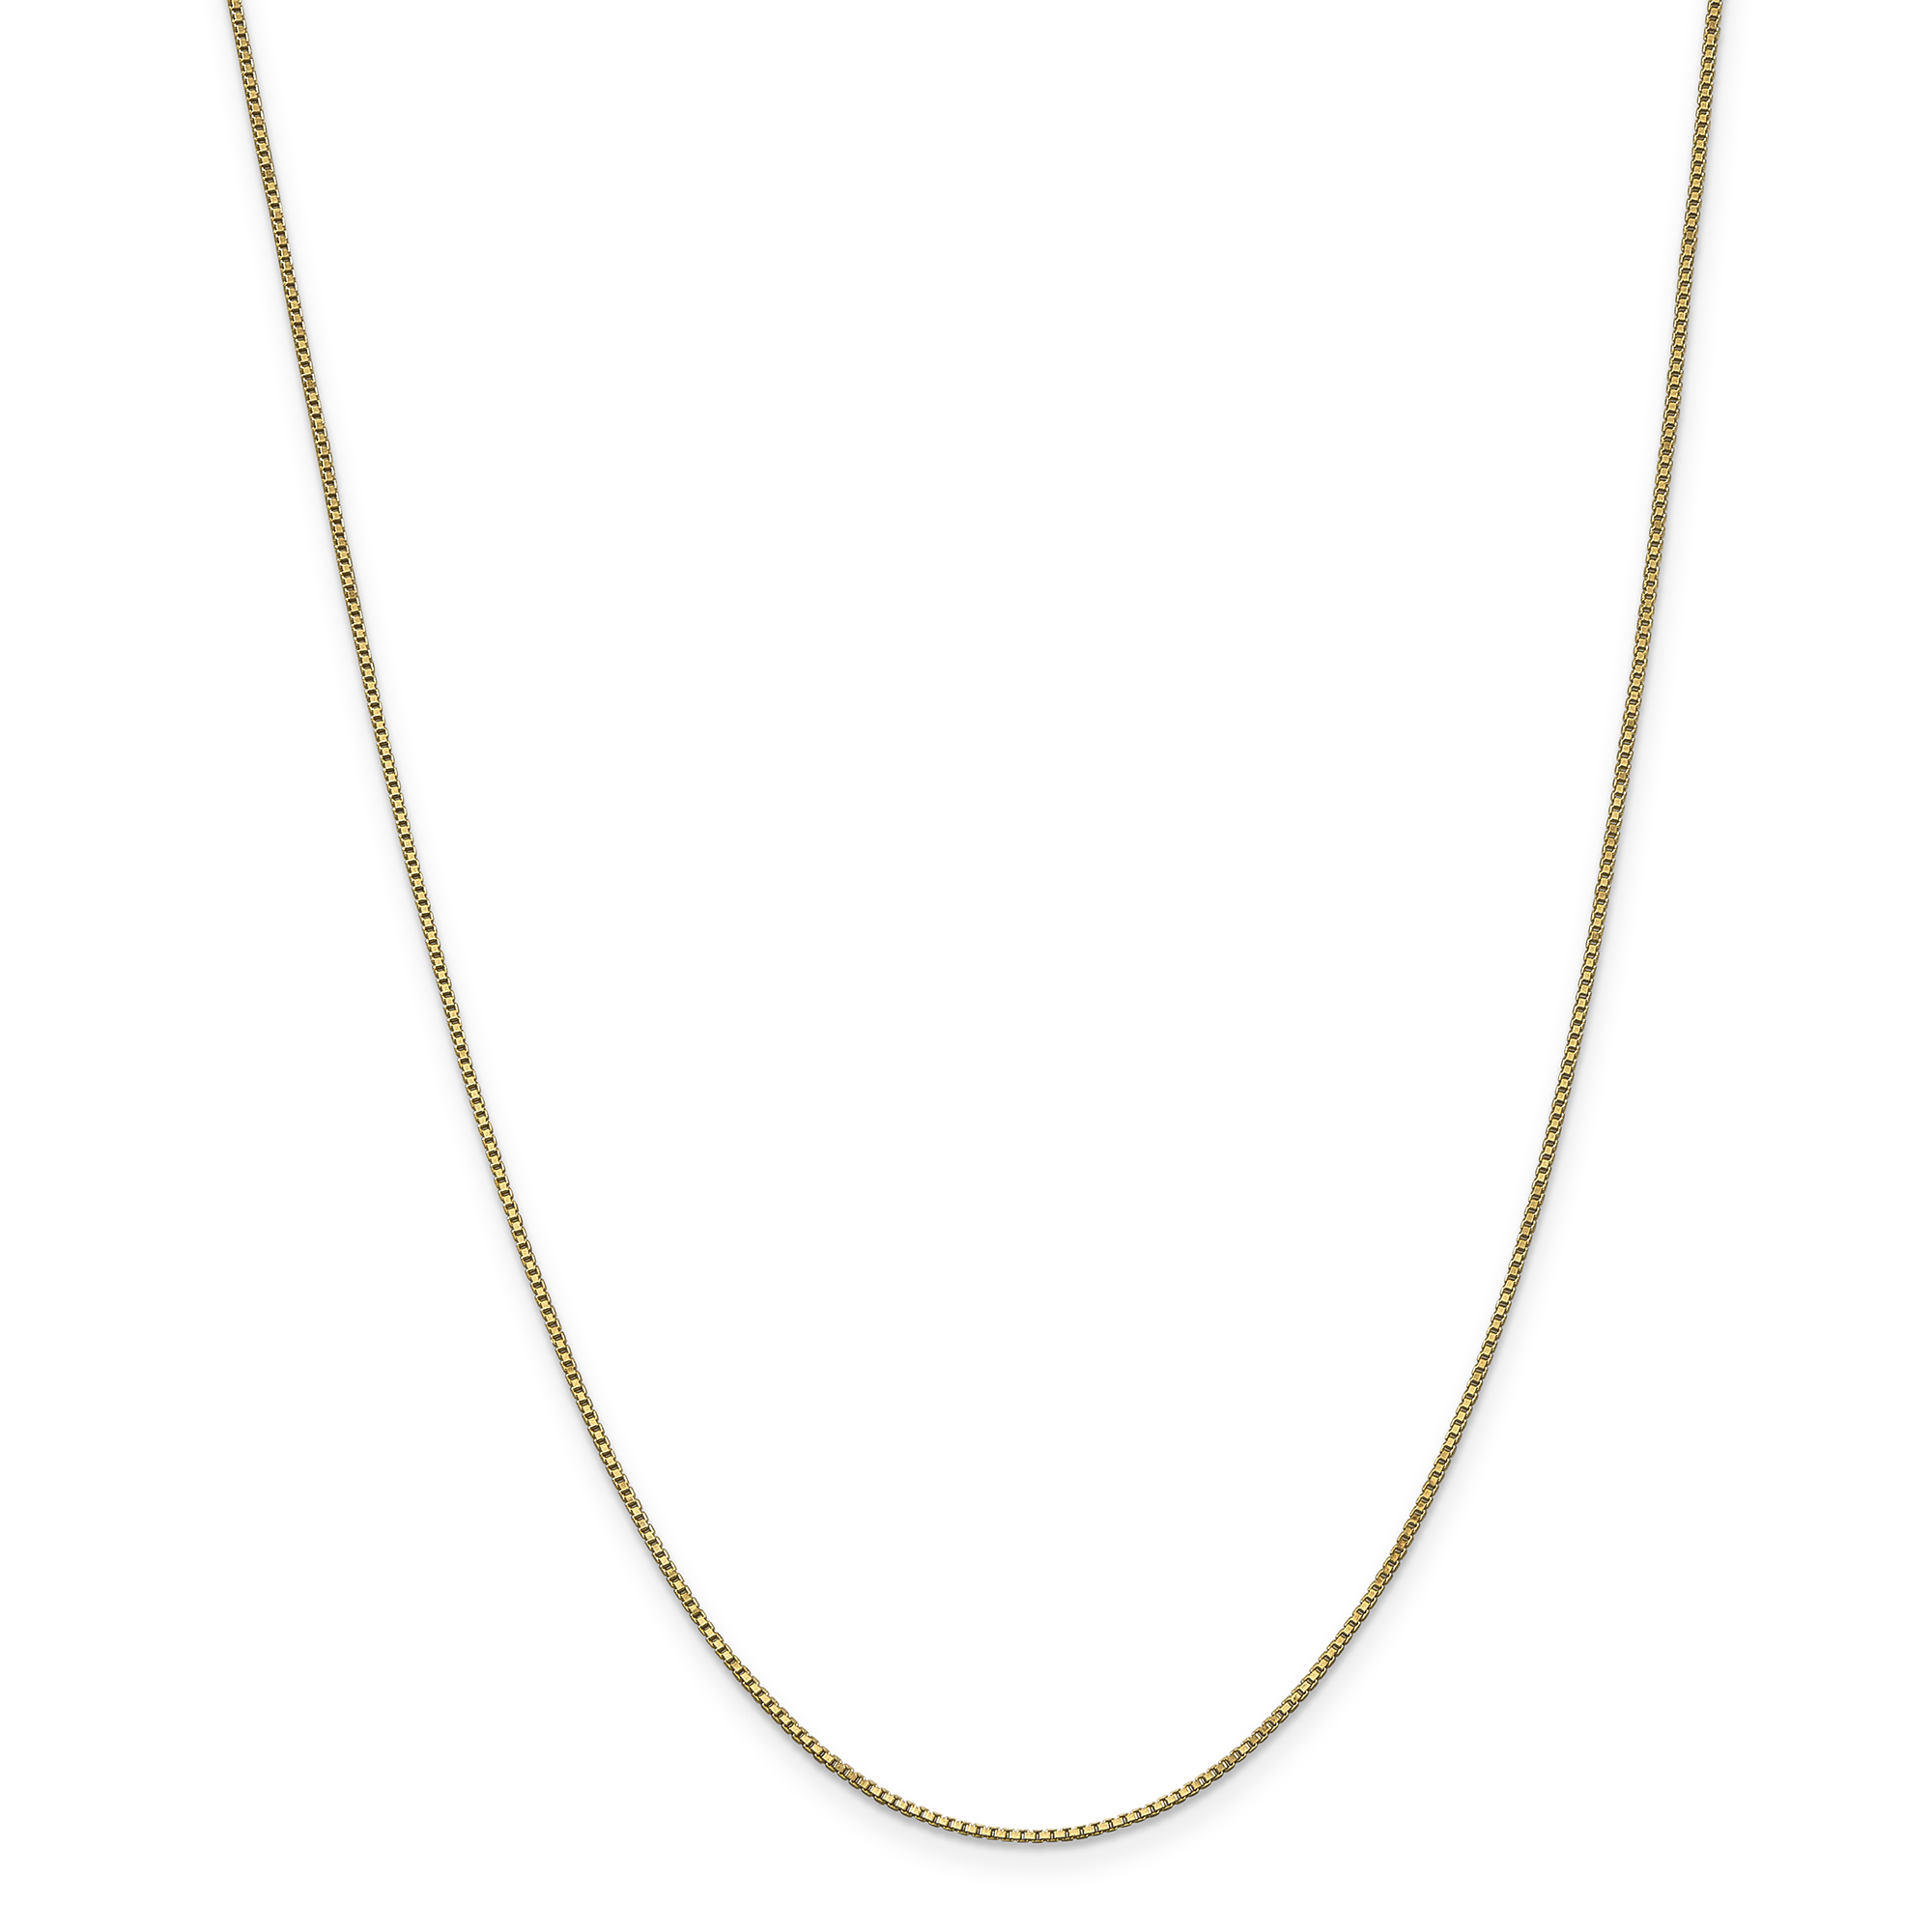 ICE CARATS 14kt Yellow Gold 1 Mm Link Box Lobster Chain Necklace 16 Inch Pendant Charm Fine Jewelry Ideal Gifts For... by IceCarats Designer Jewelry Gift USA